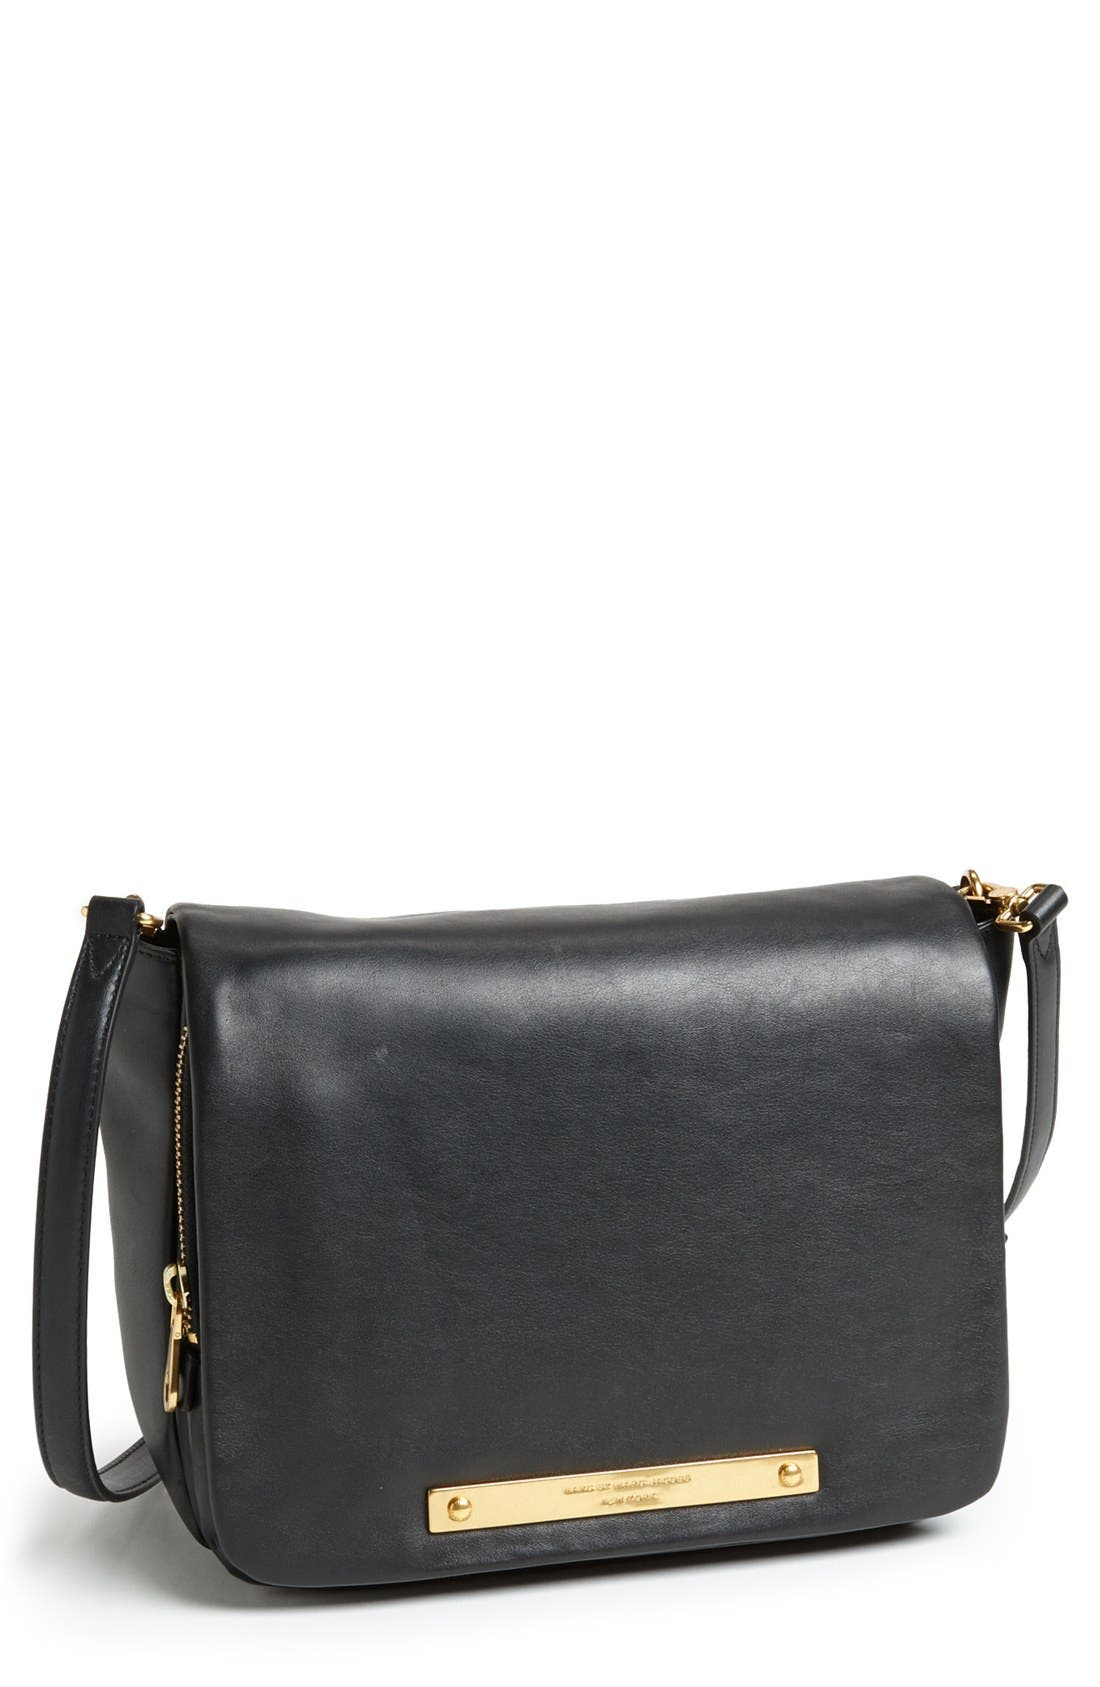 Alternate Image 1 Selected - MARC BY MARC JACOBS 'Heyo' Crossbody Bag